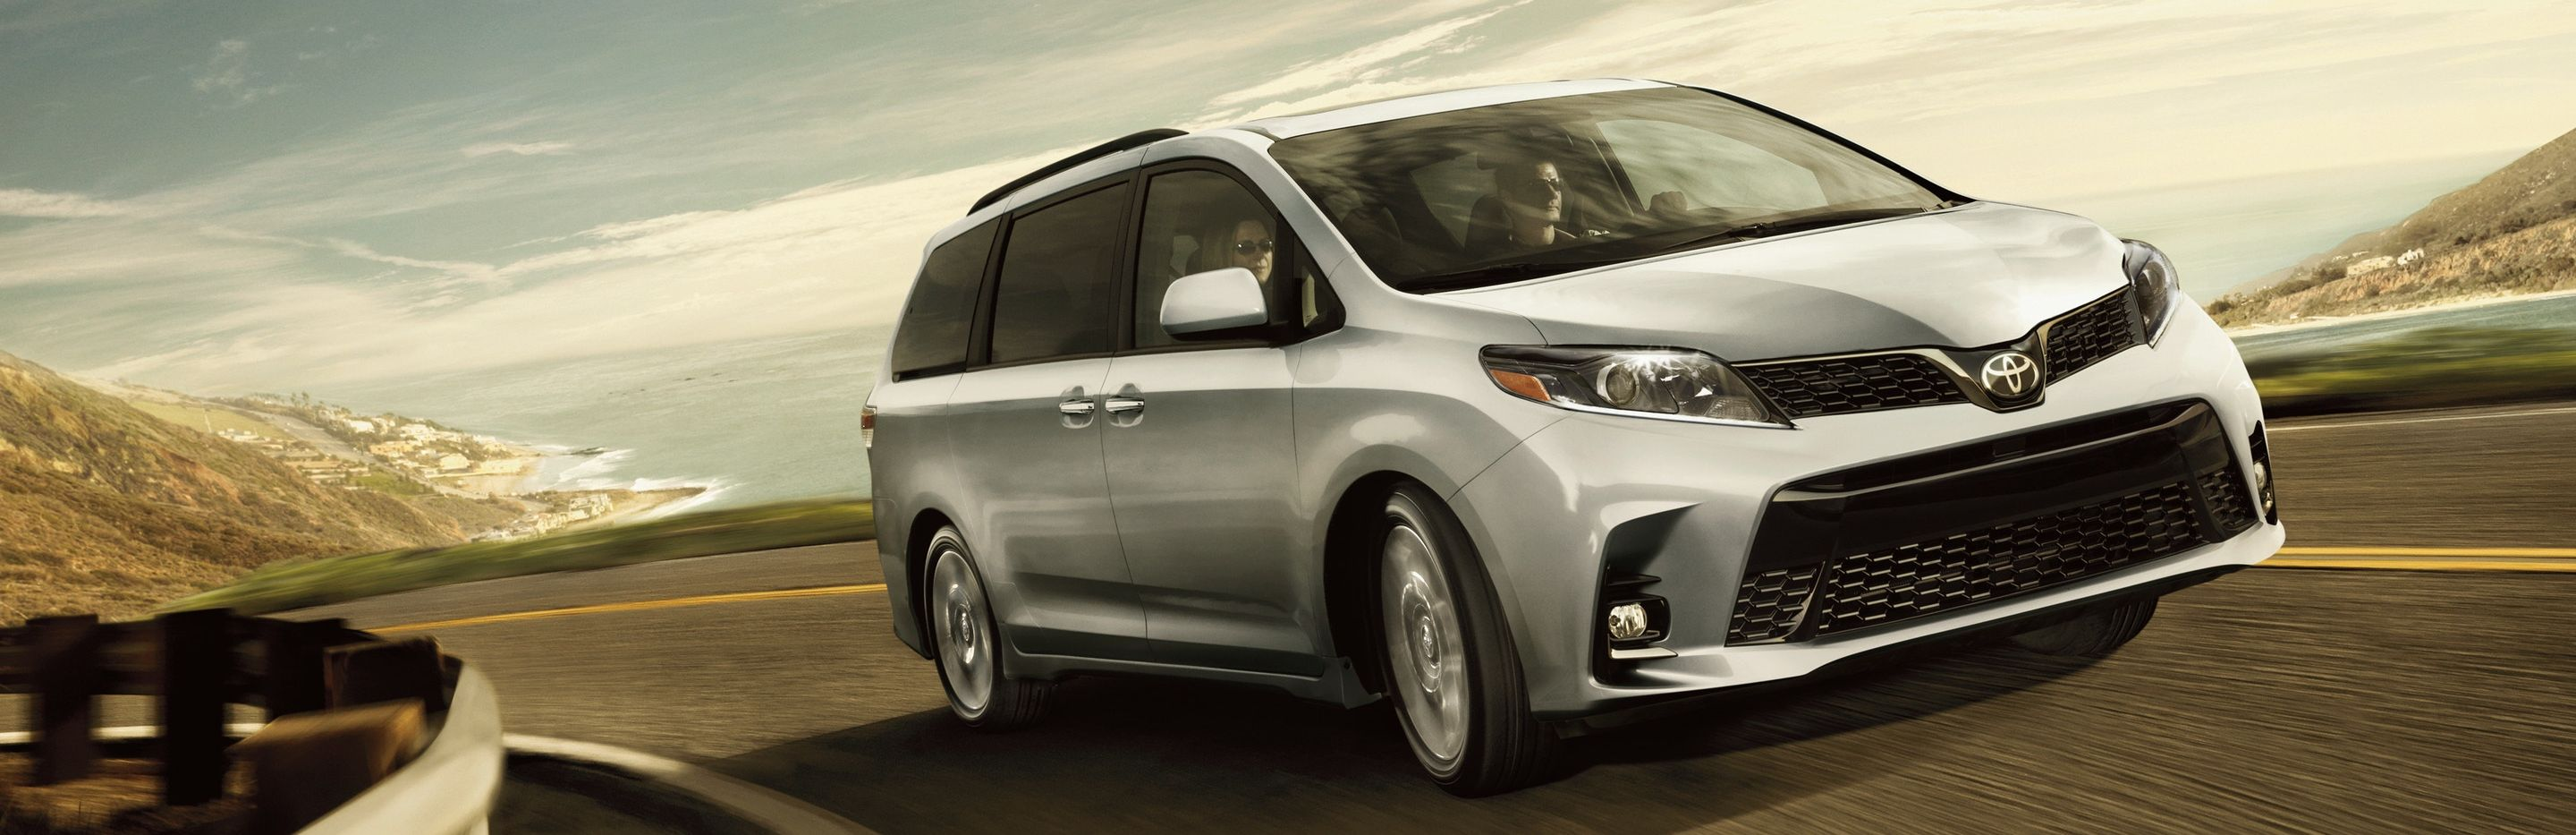 2020 Toyota Sienna for Sale near Des Moines, IA